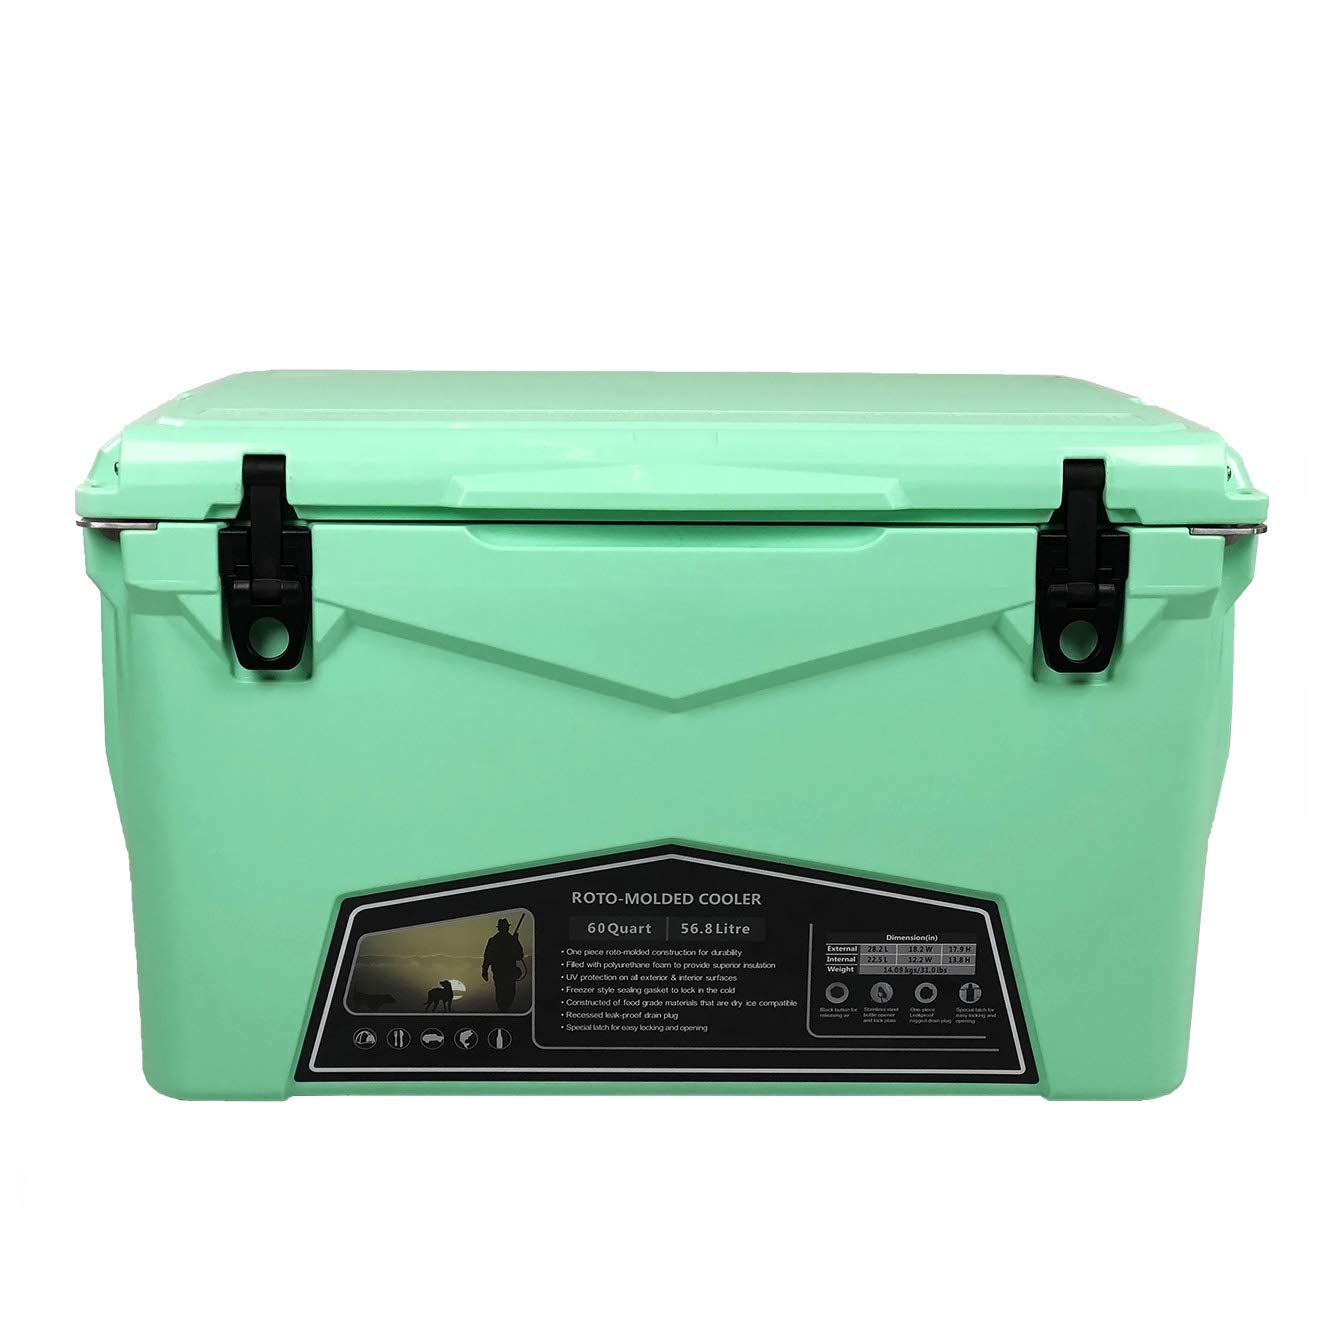 Xspec 60QT Quart Rotomolded High Performance Cooler Pro Tough Outdoor Ice Chest, Durable Stylish Roto-Molded with Bottle Openers, Vacuum Release Valve, and Low Profile Snap Tight Latches